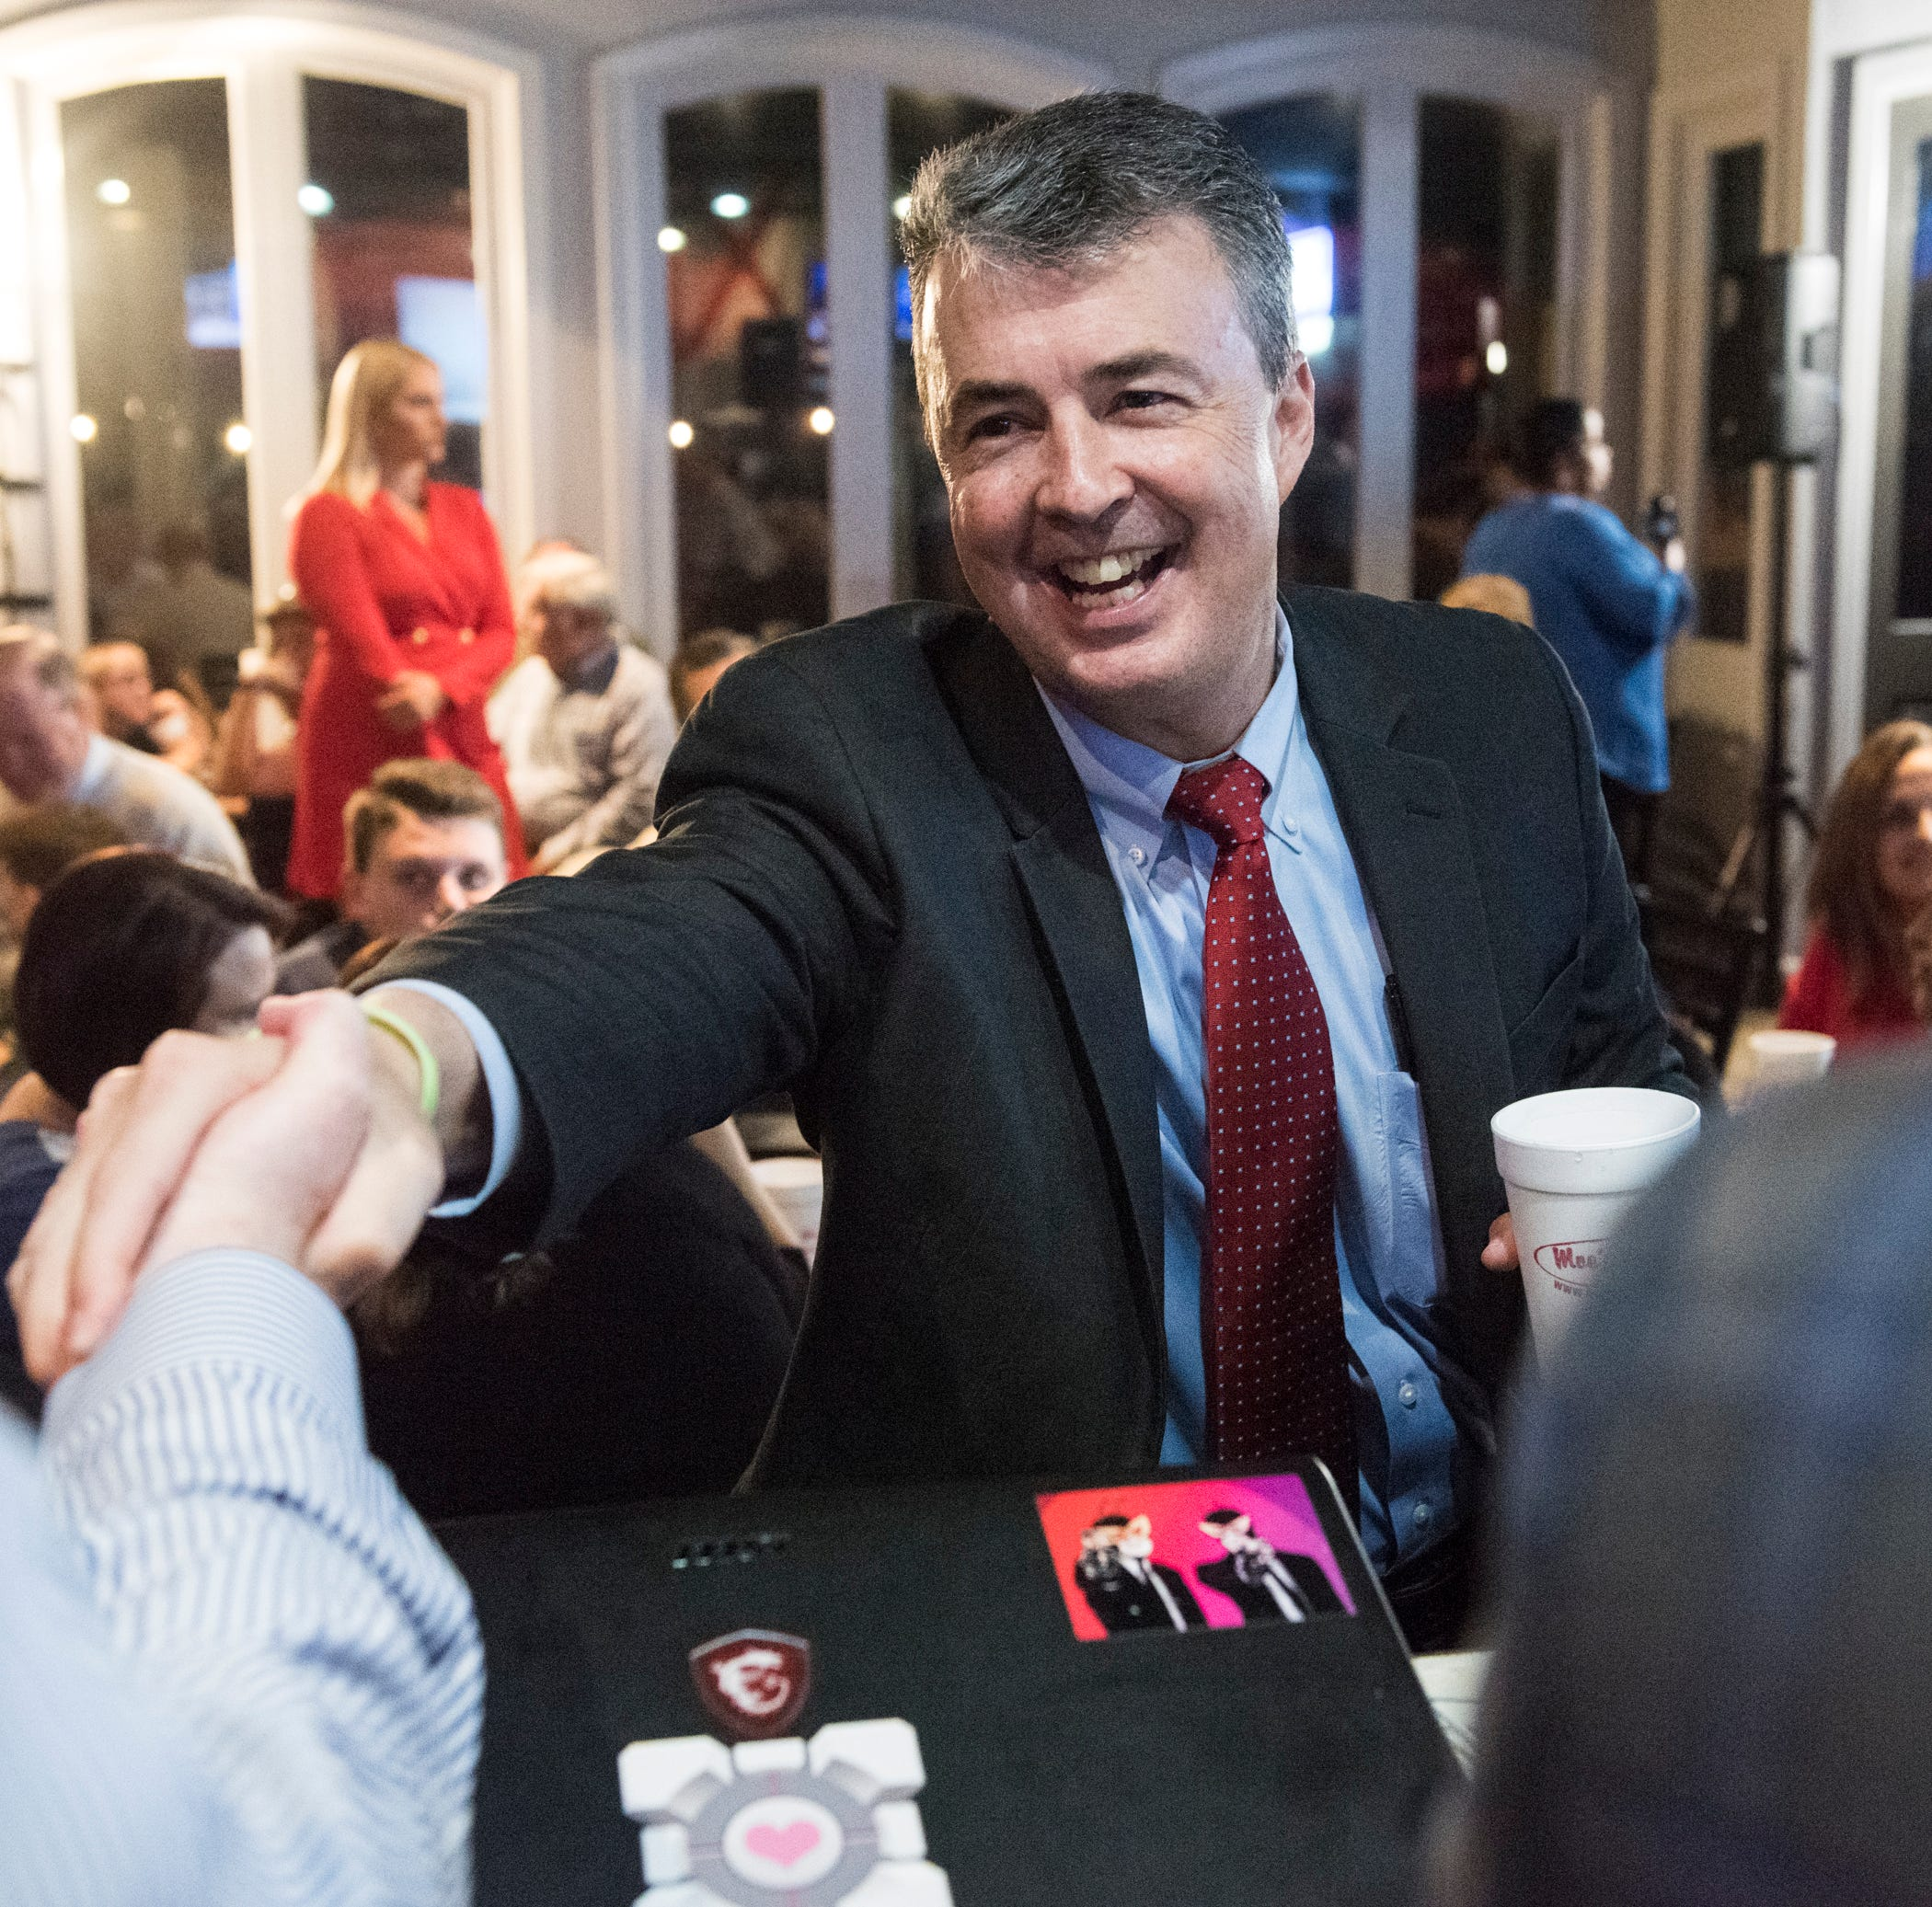 Steve Marshall wins election as attorney general